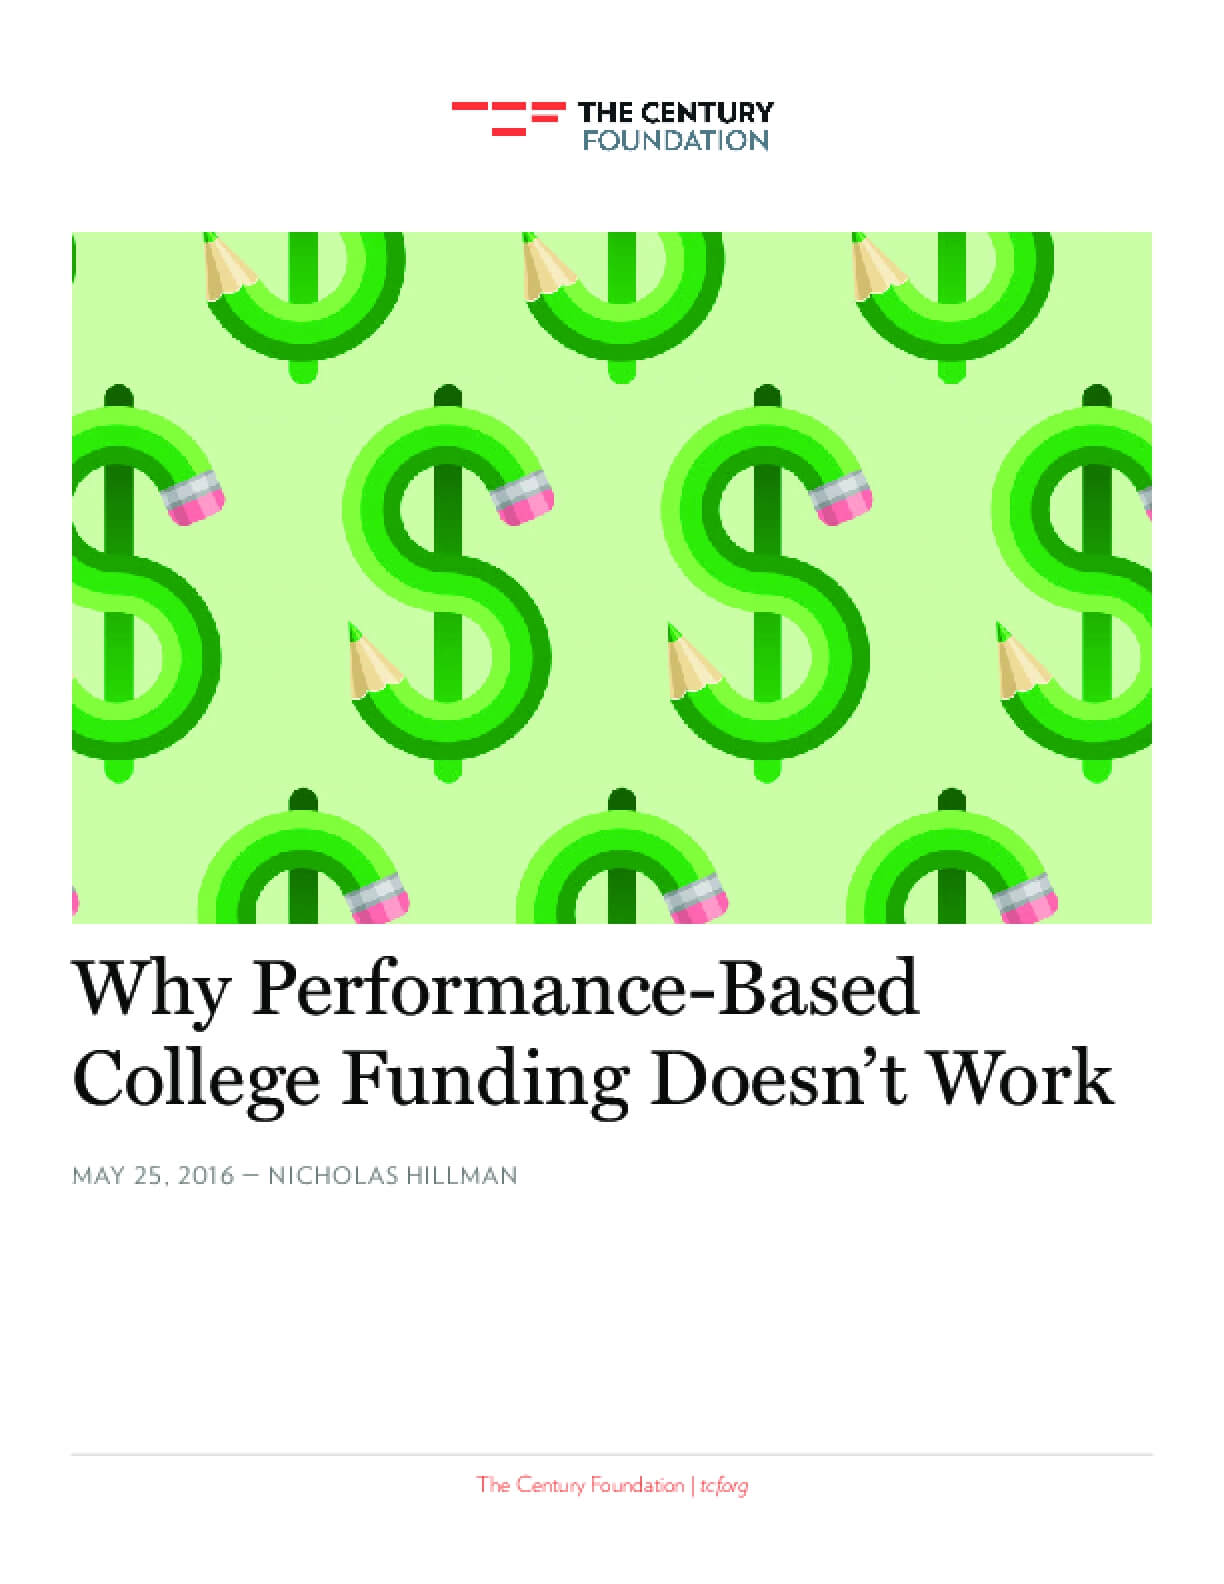 Why Performance-Based College Funding Doesn't Work